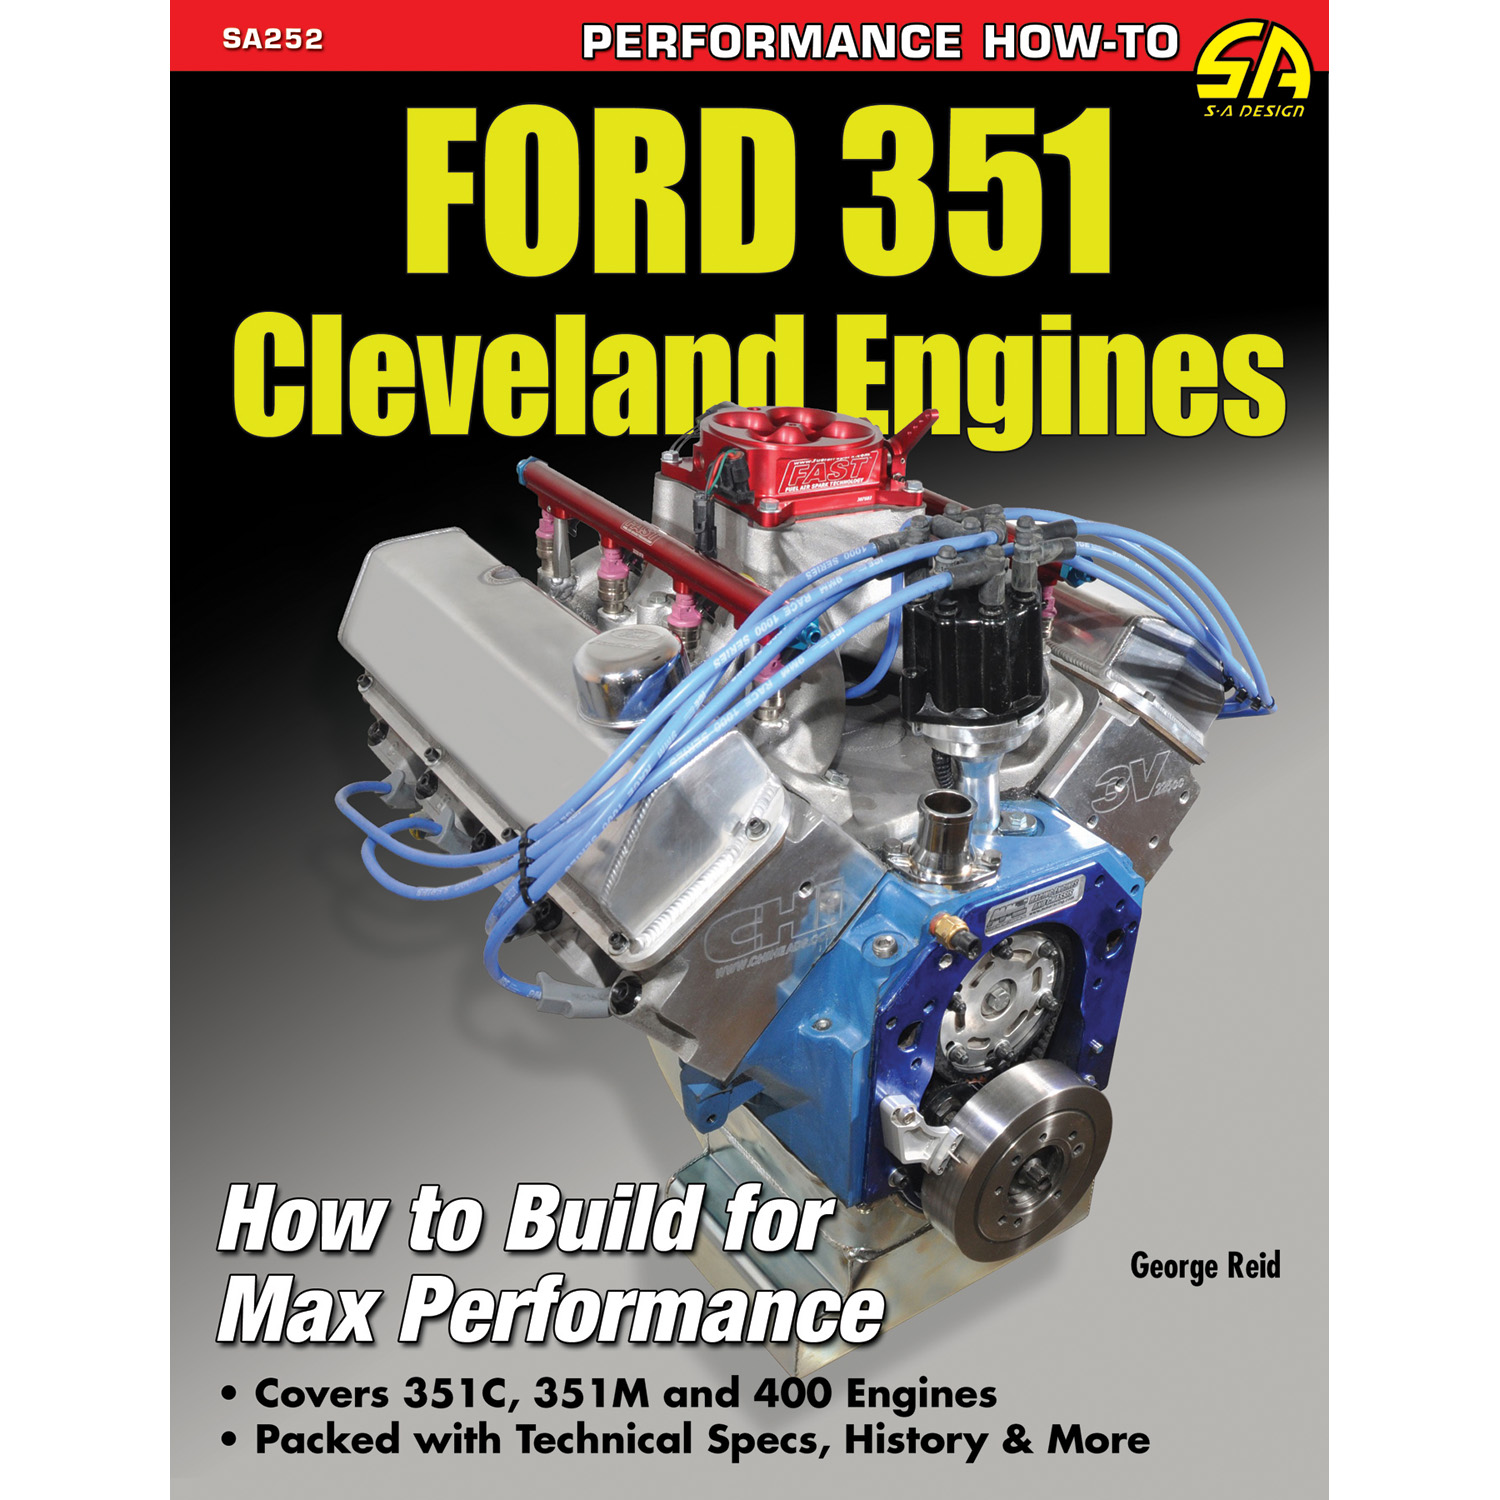 SA Design, Ford 351 Cleveland Engines - How to Build for Max